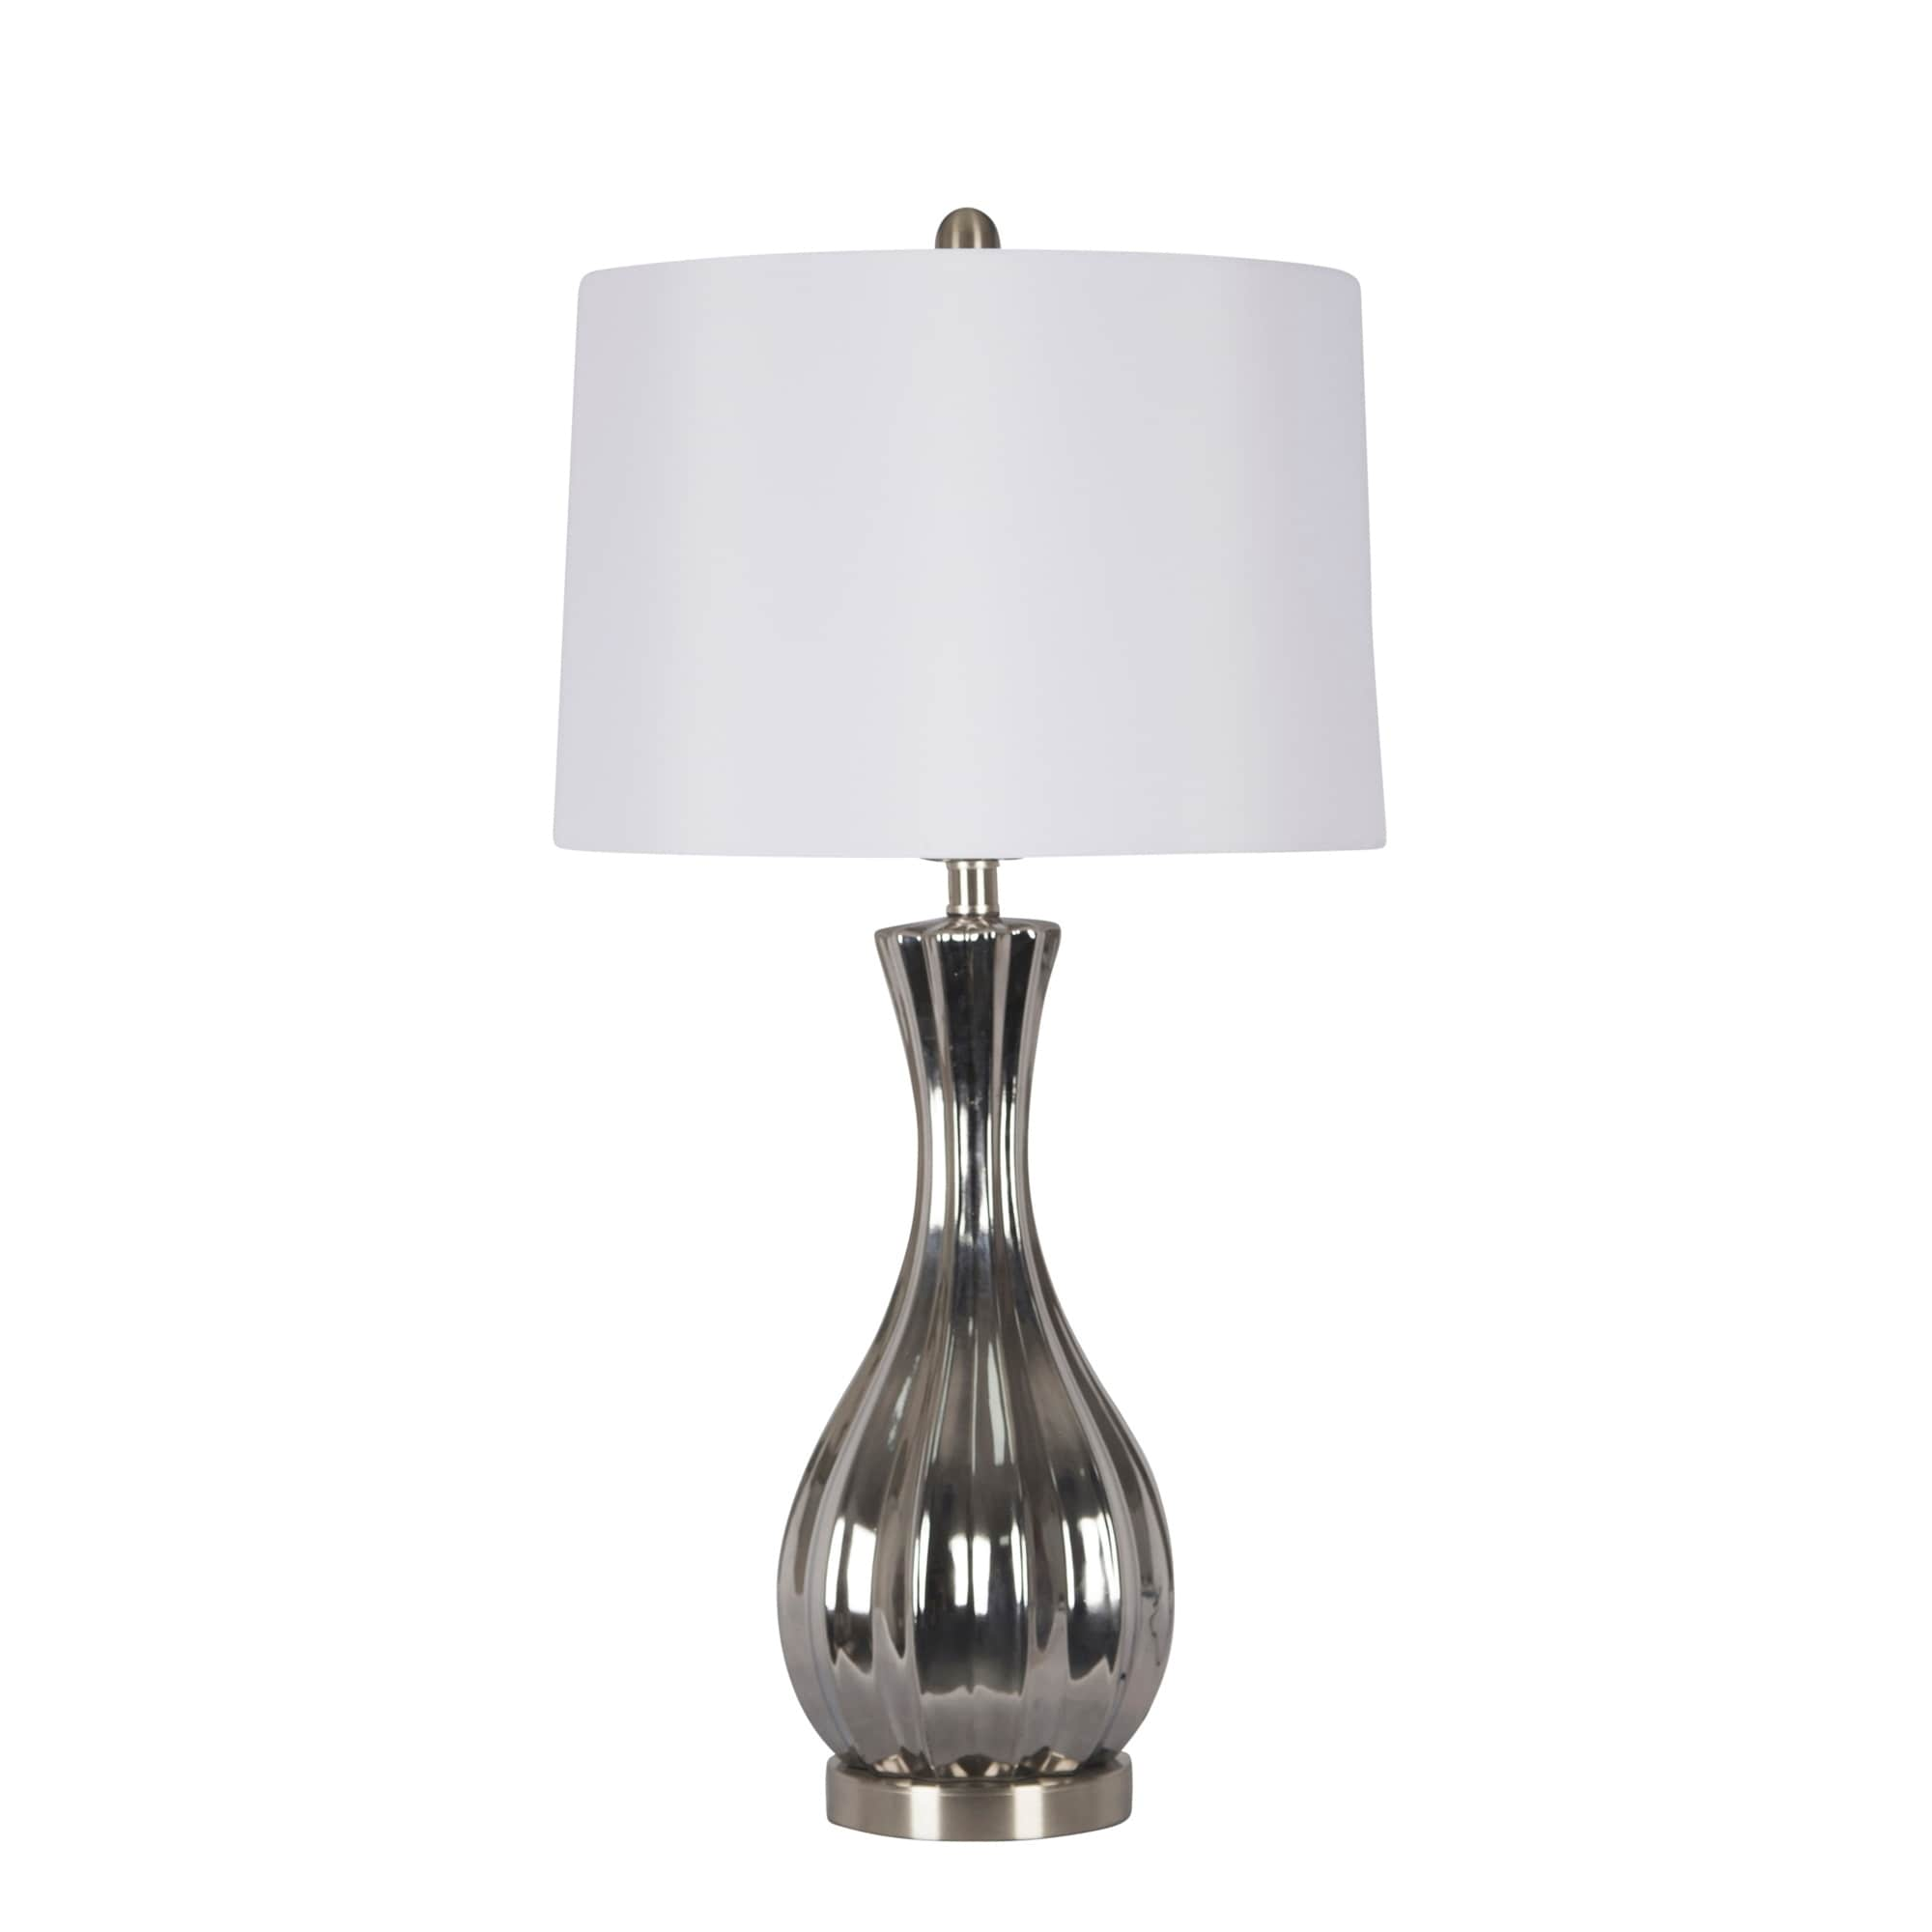 Shop Ceramic Table Lamp Silver 29 Overstock 25623734